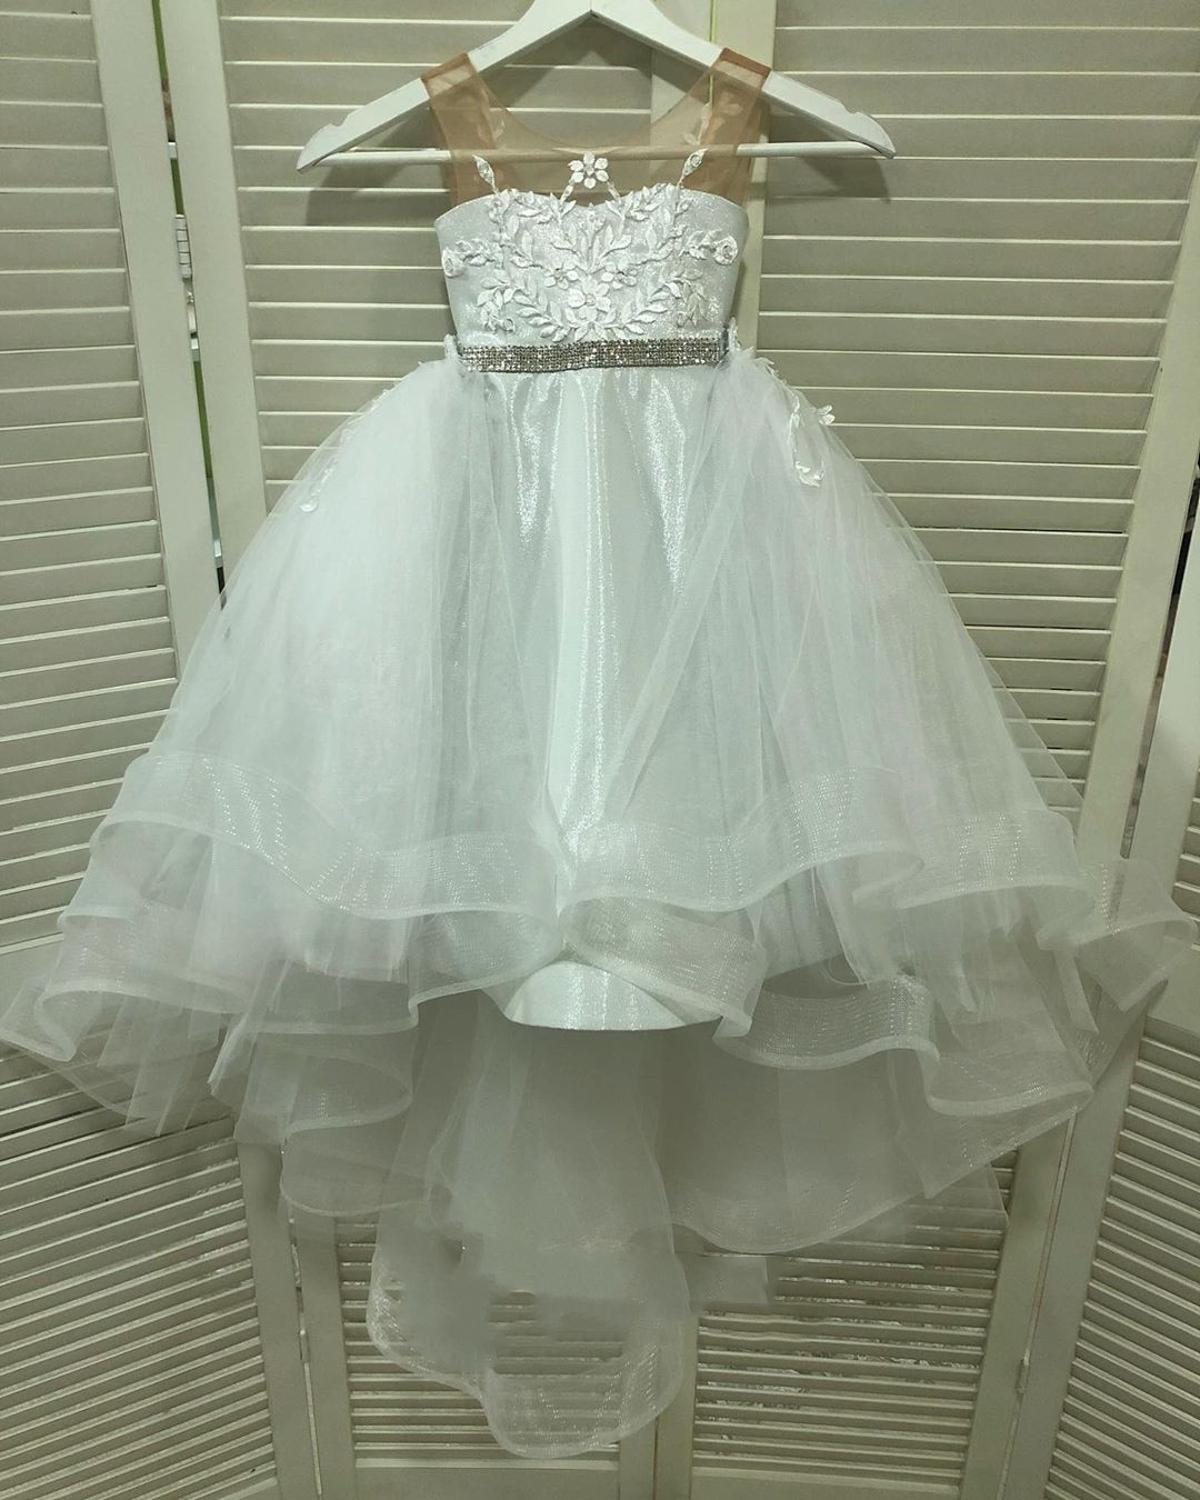 New Arrival White Soft Sweet Kid Flower Girl Dresses Lace Mesh Evening Gowns For Wedding Communion Dresses Vestido